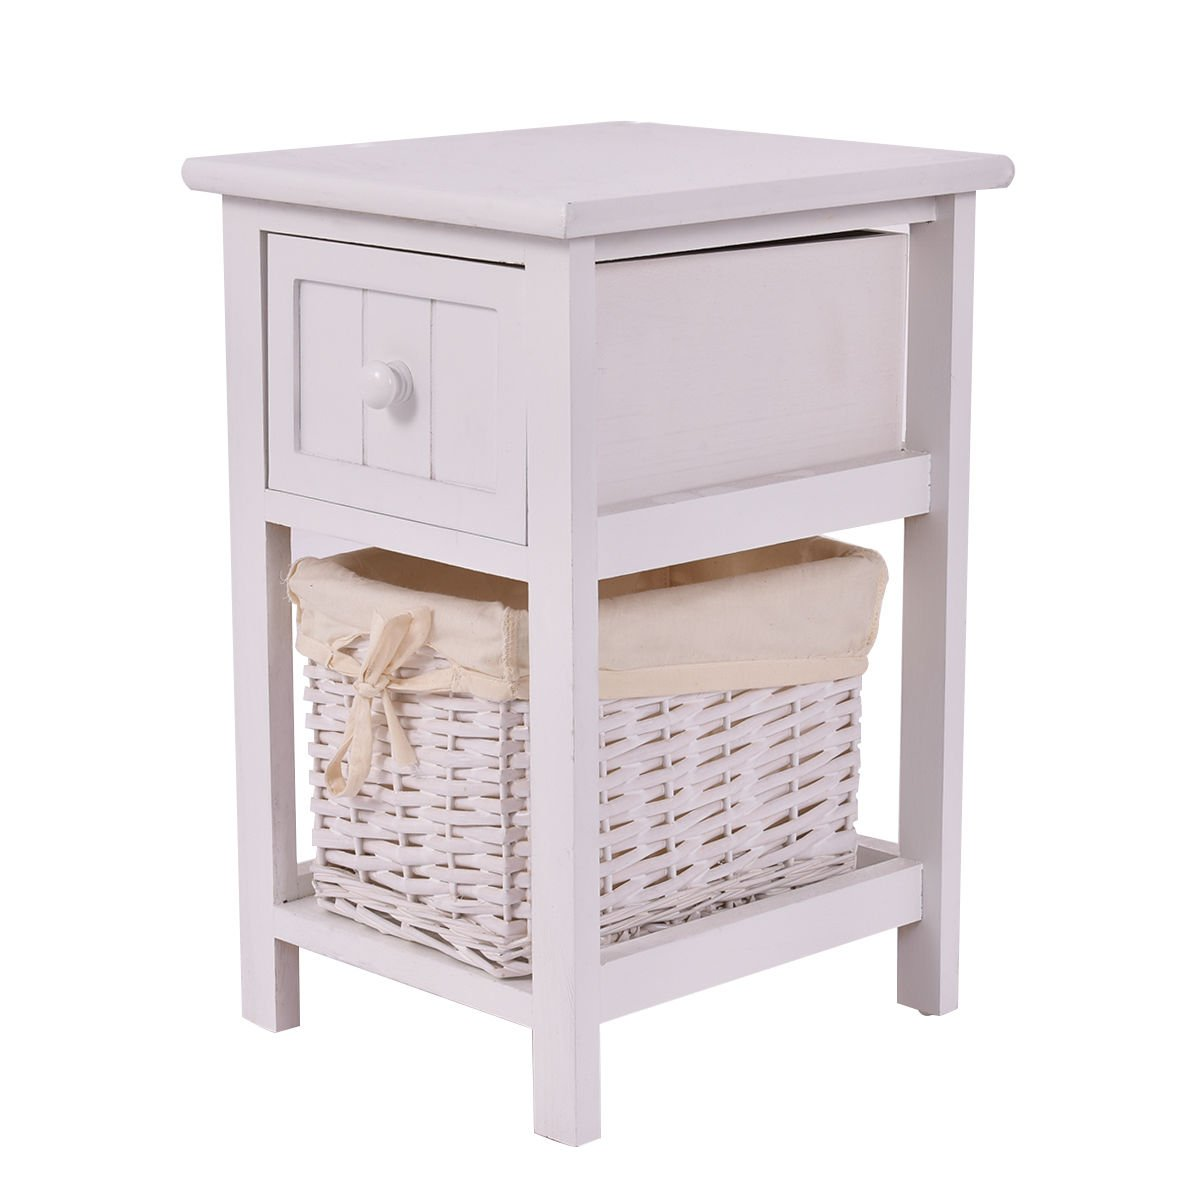 giantex mini wooden nightstand layers and basket eugene accent table drawer bedside organizer for kid adult bedroom end kitchen dining small white gloss console side lamps glass